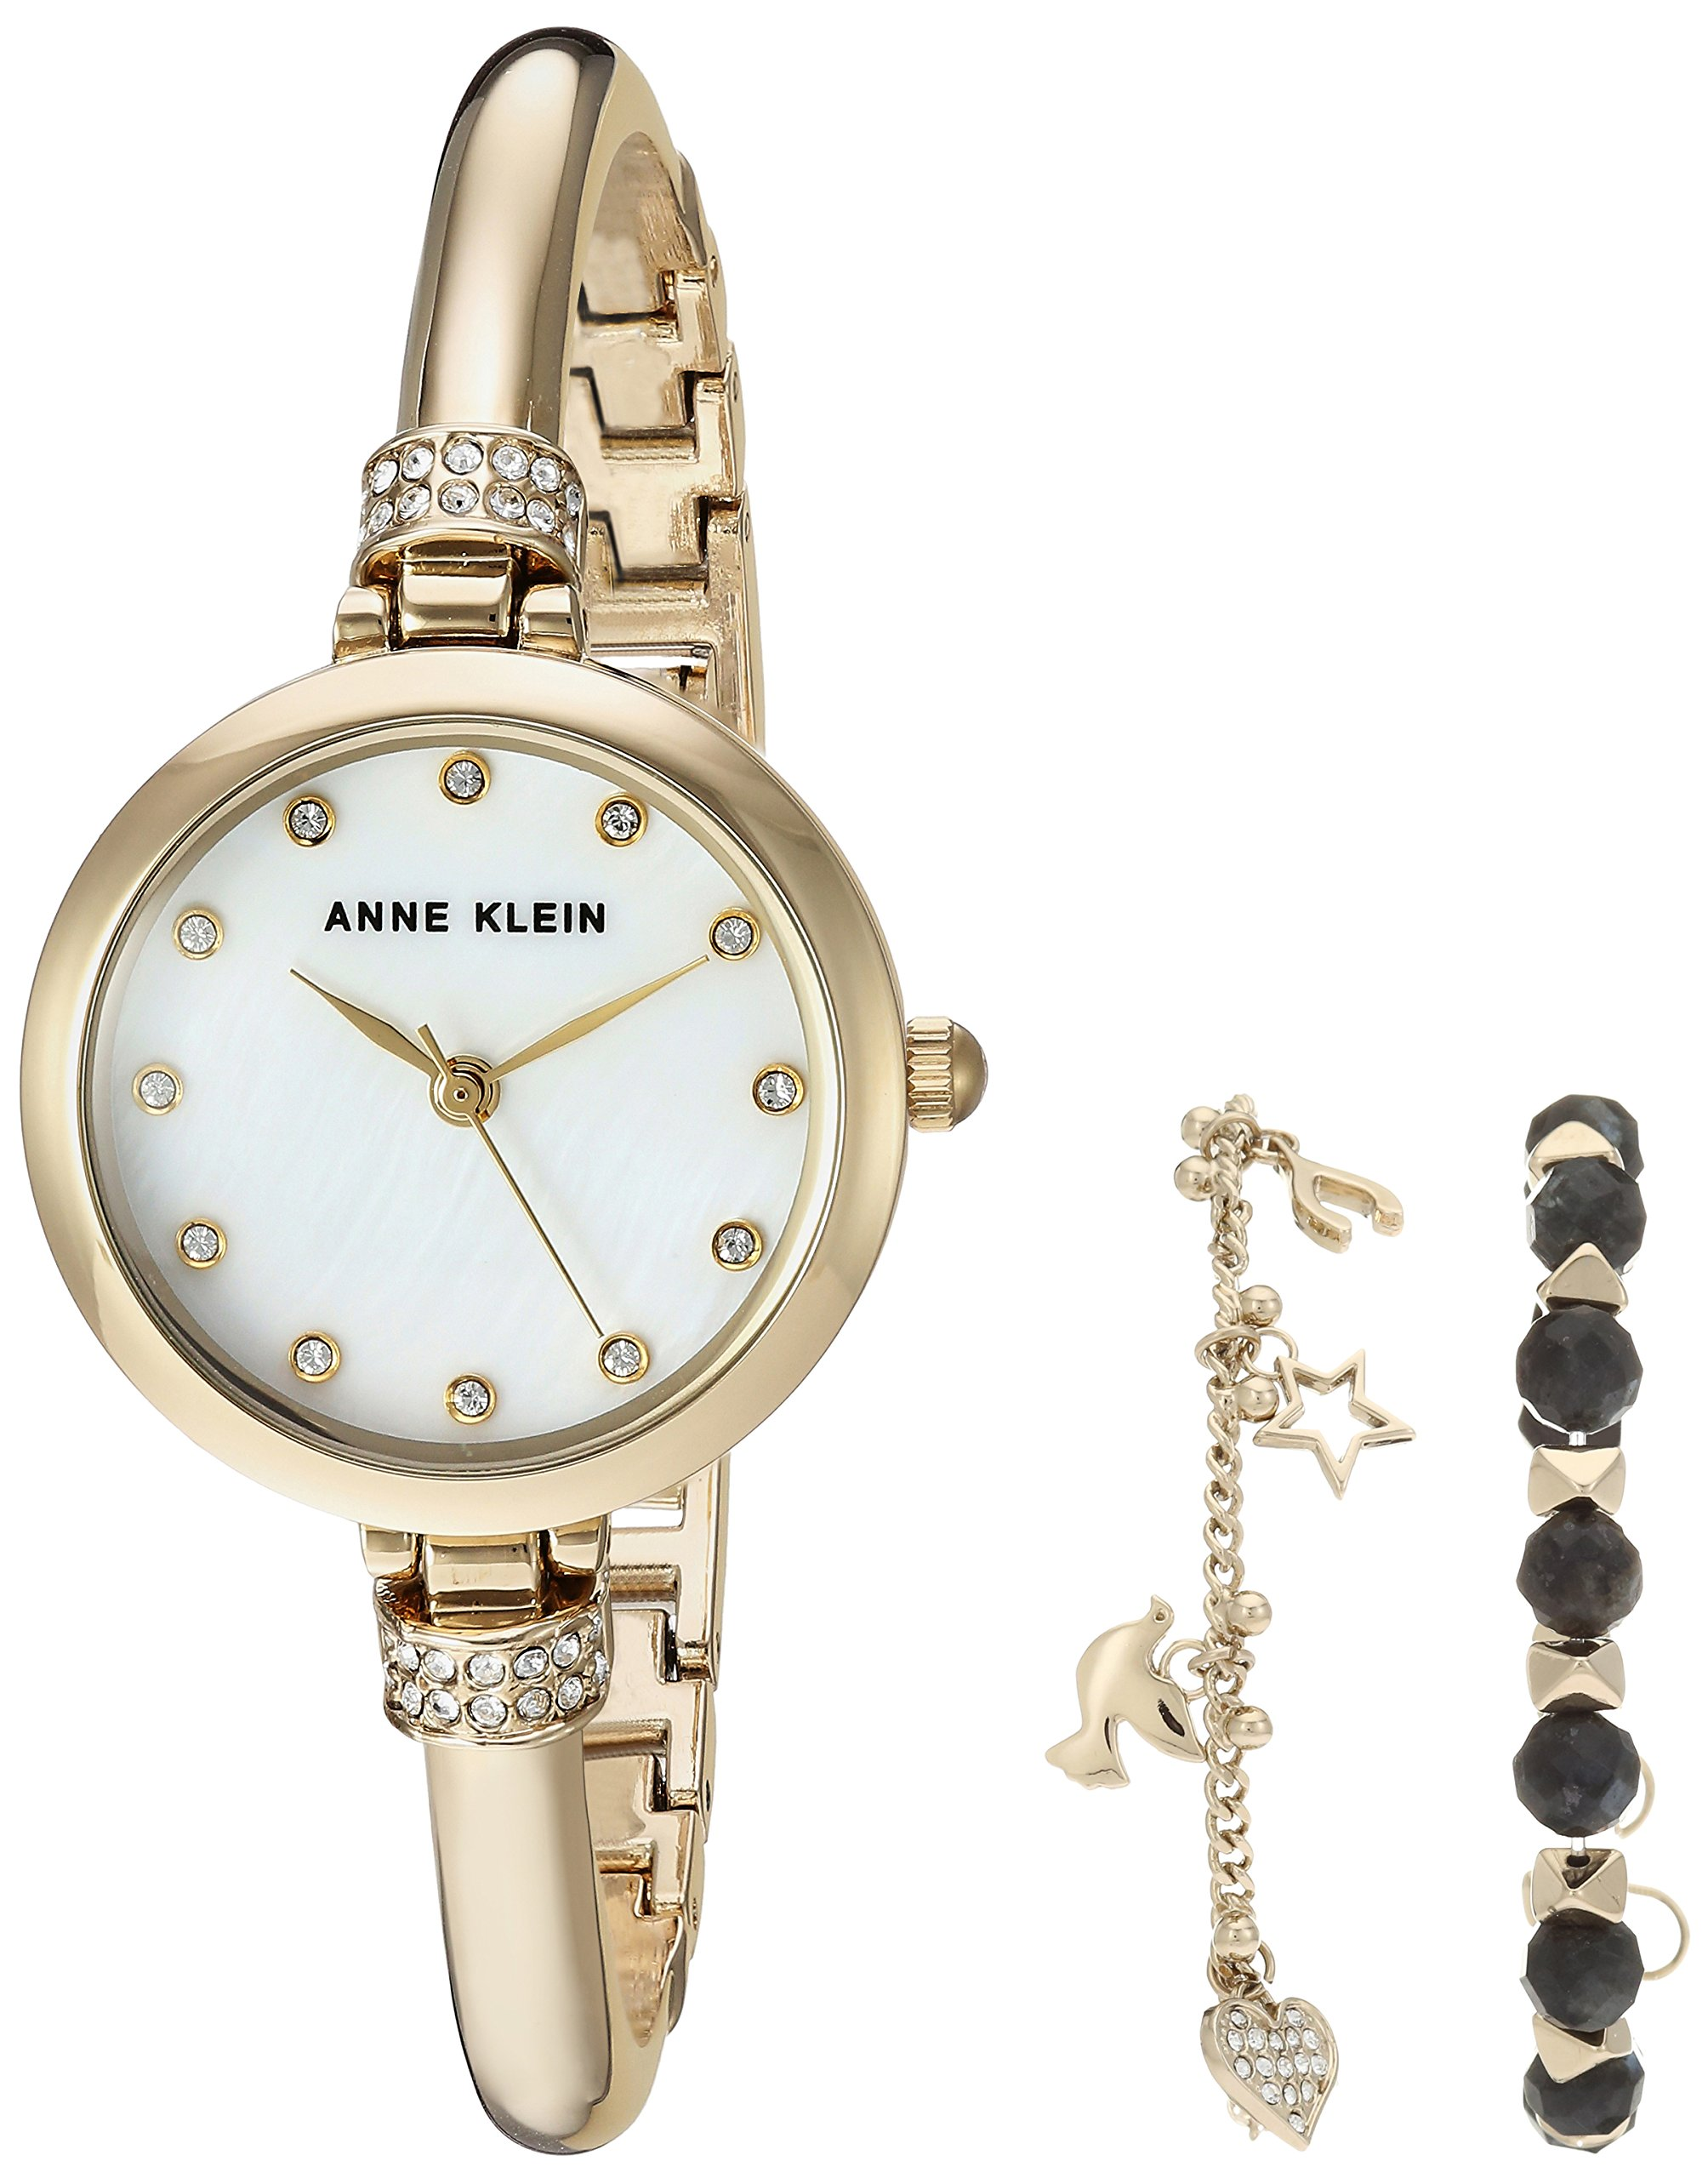 Anne Klein Women's AK/2840LBDT Swarovski Crystal Accented Gold-Tone Bangle Watch and Bracelet Set